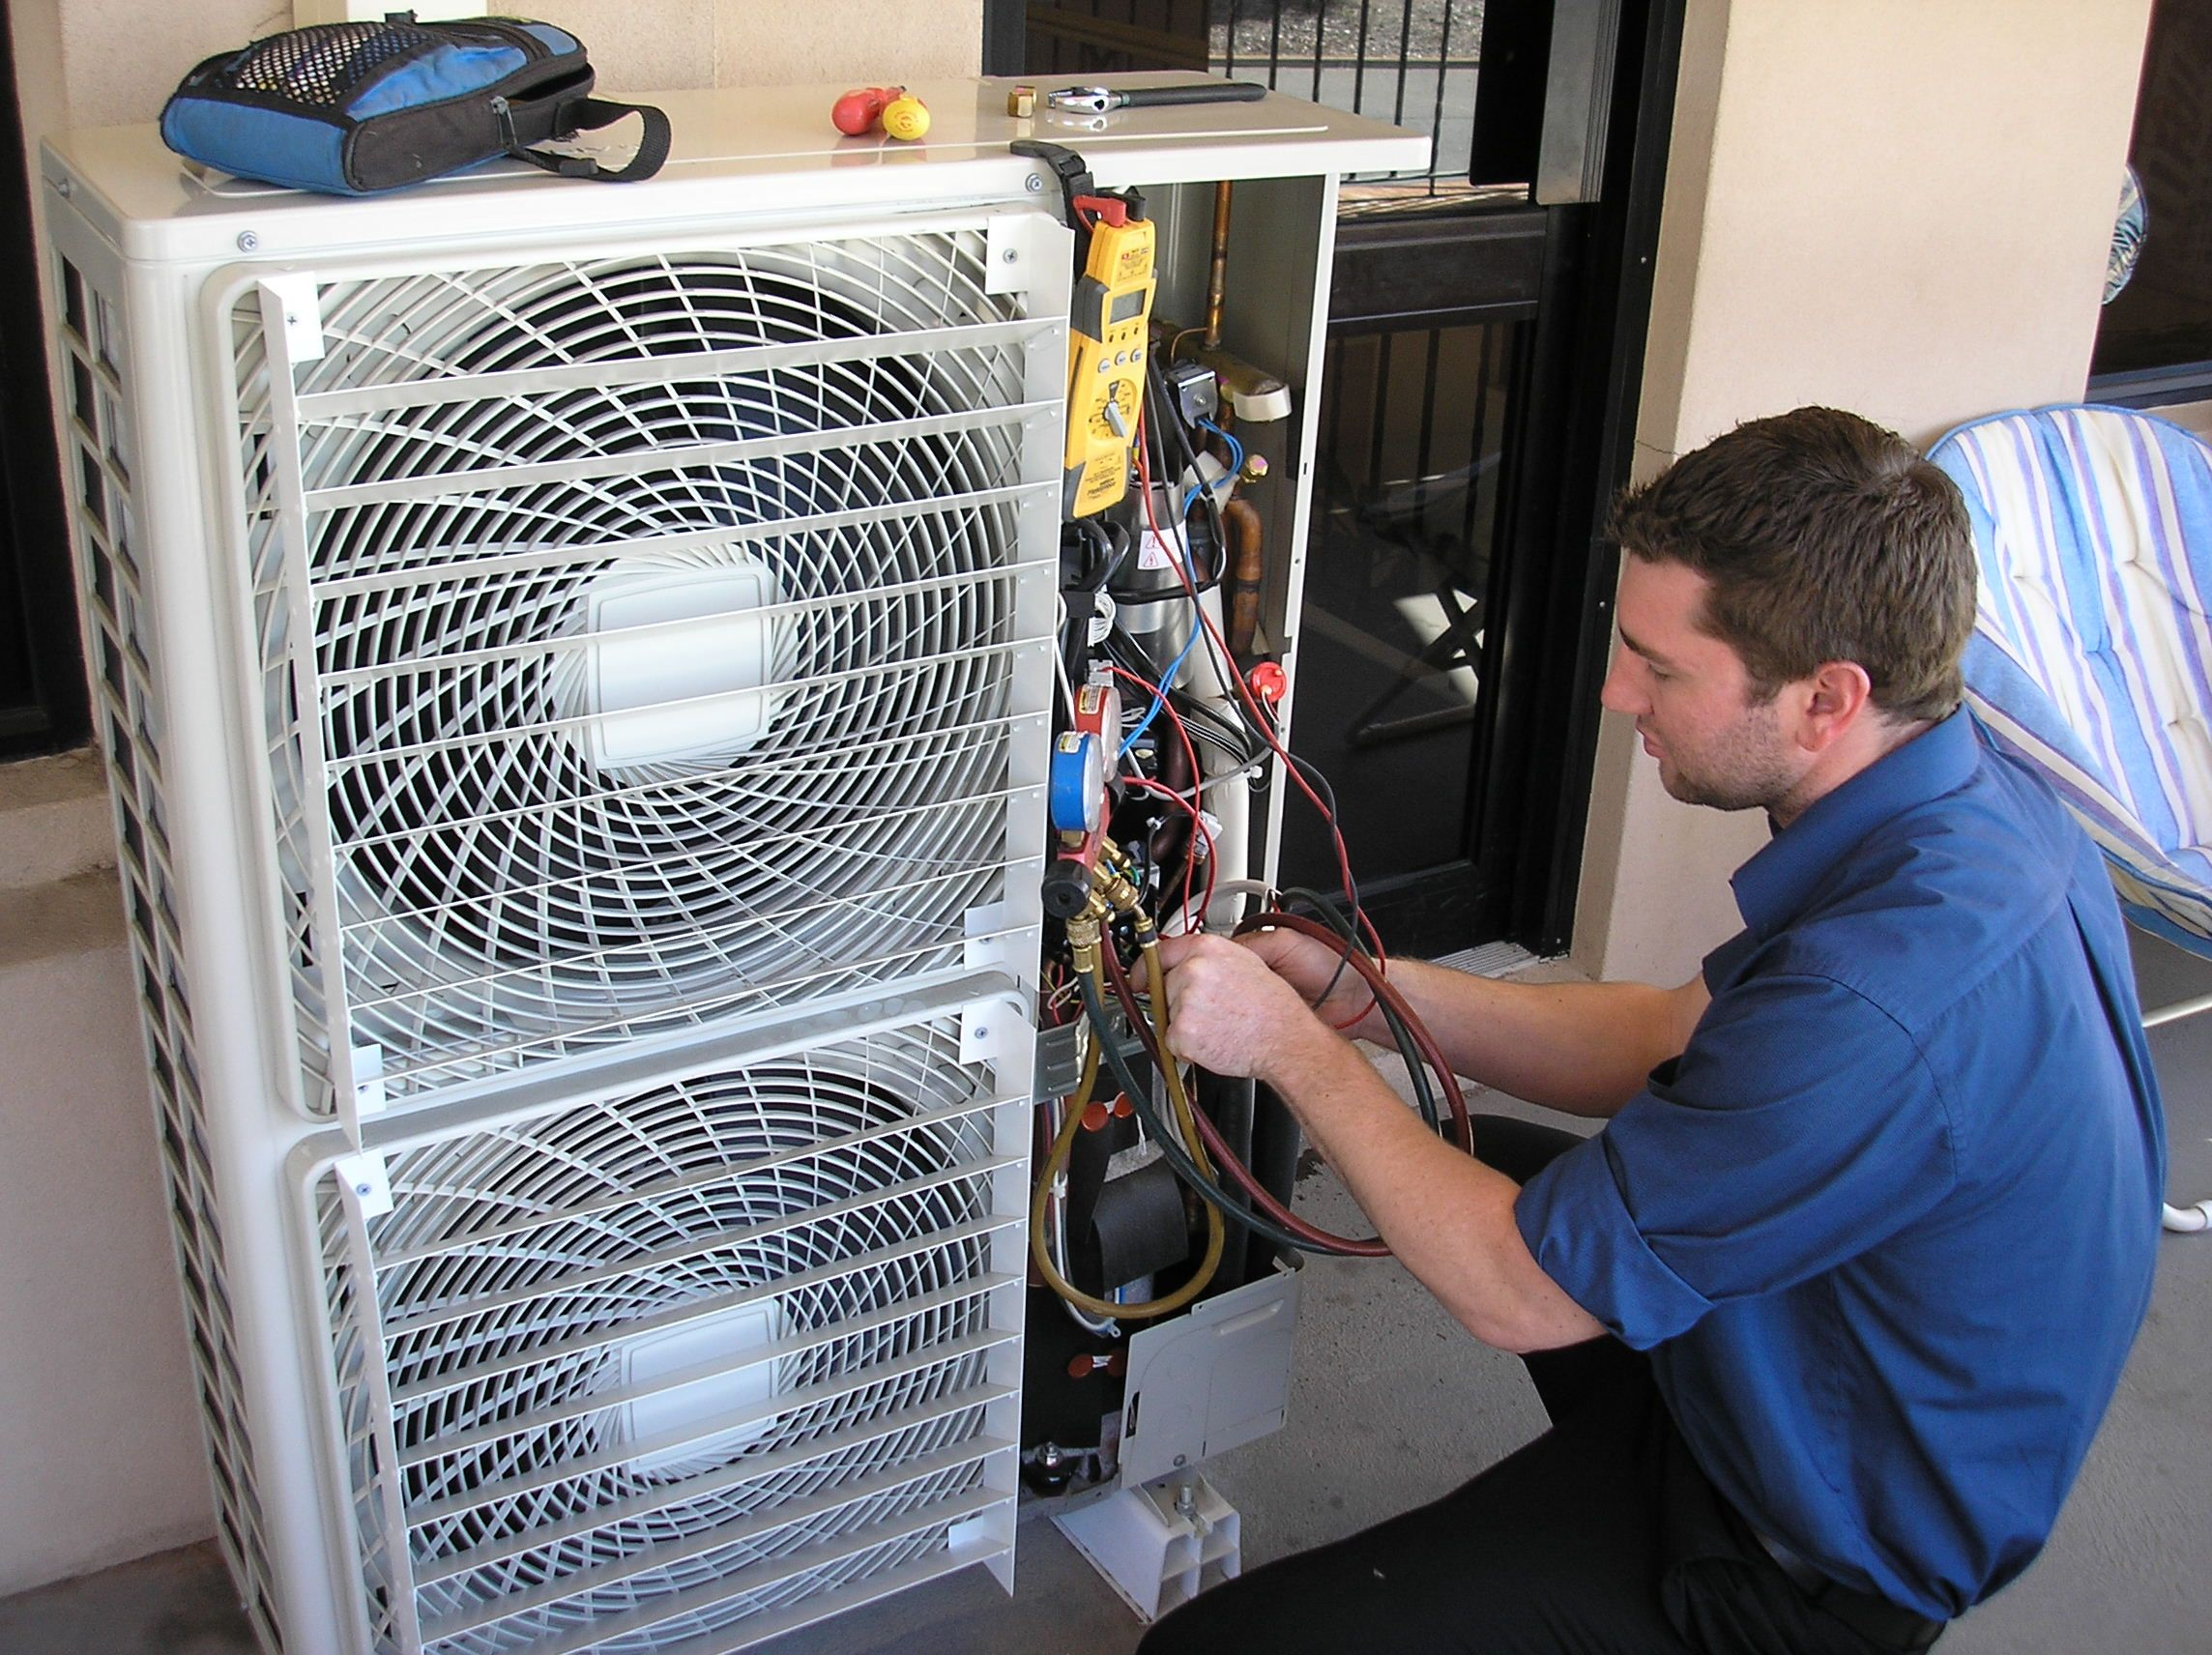 Seeking Tempe air conditioning cleaning coils? Here at AC